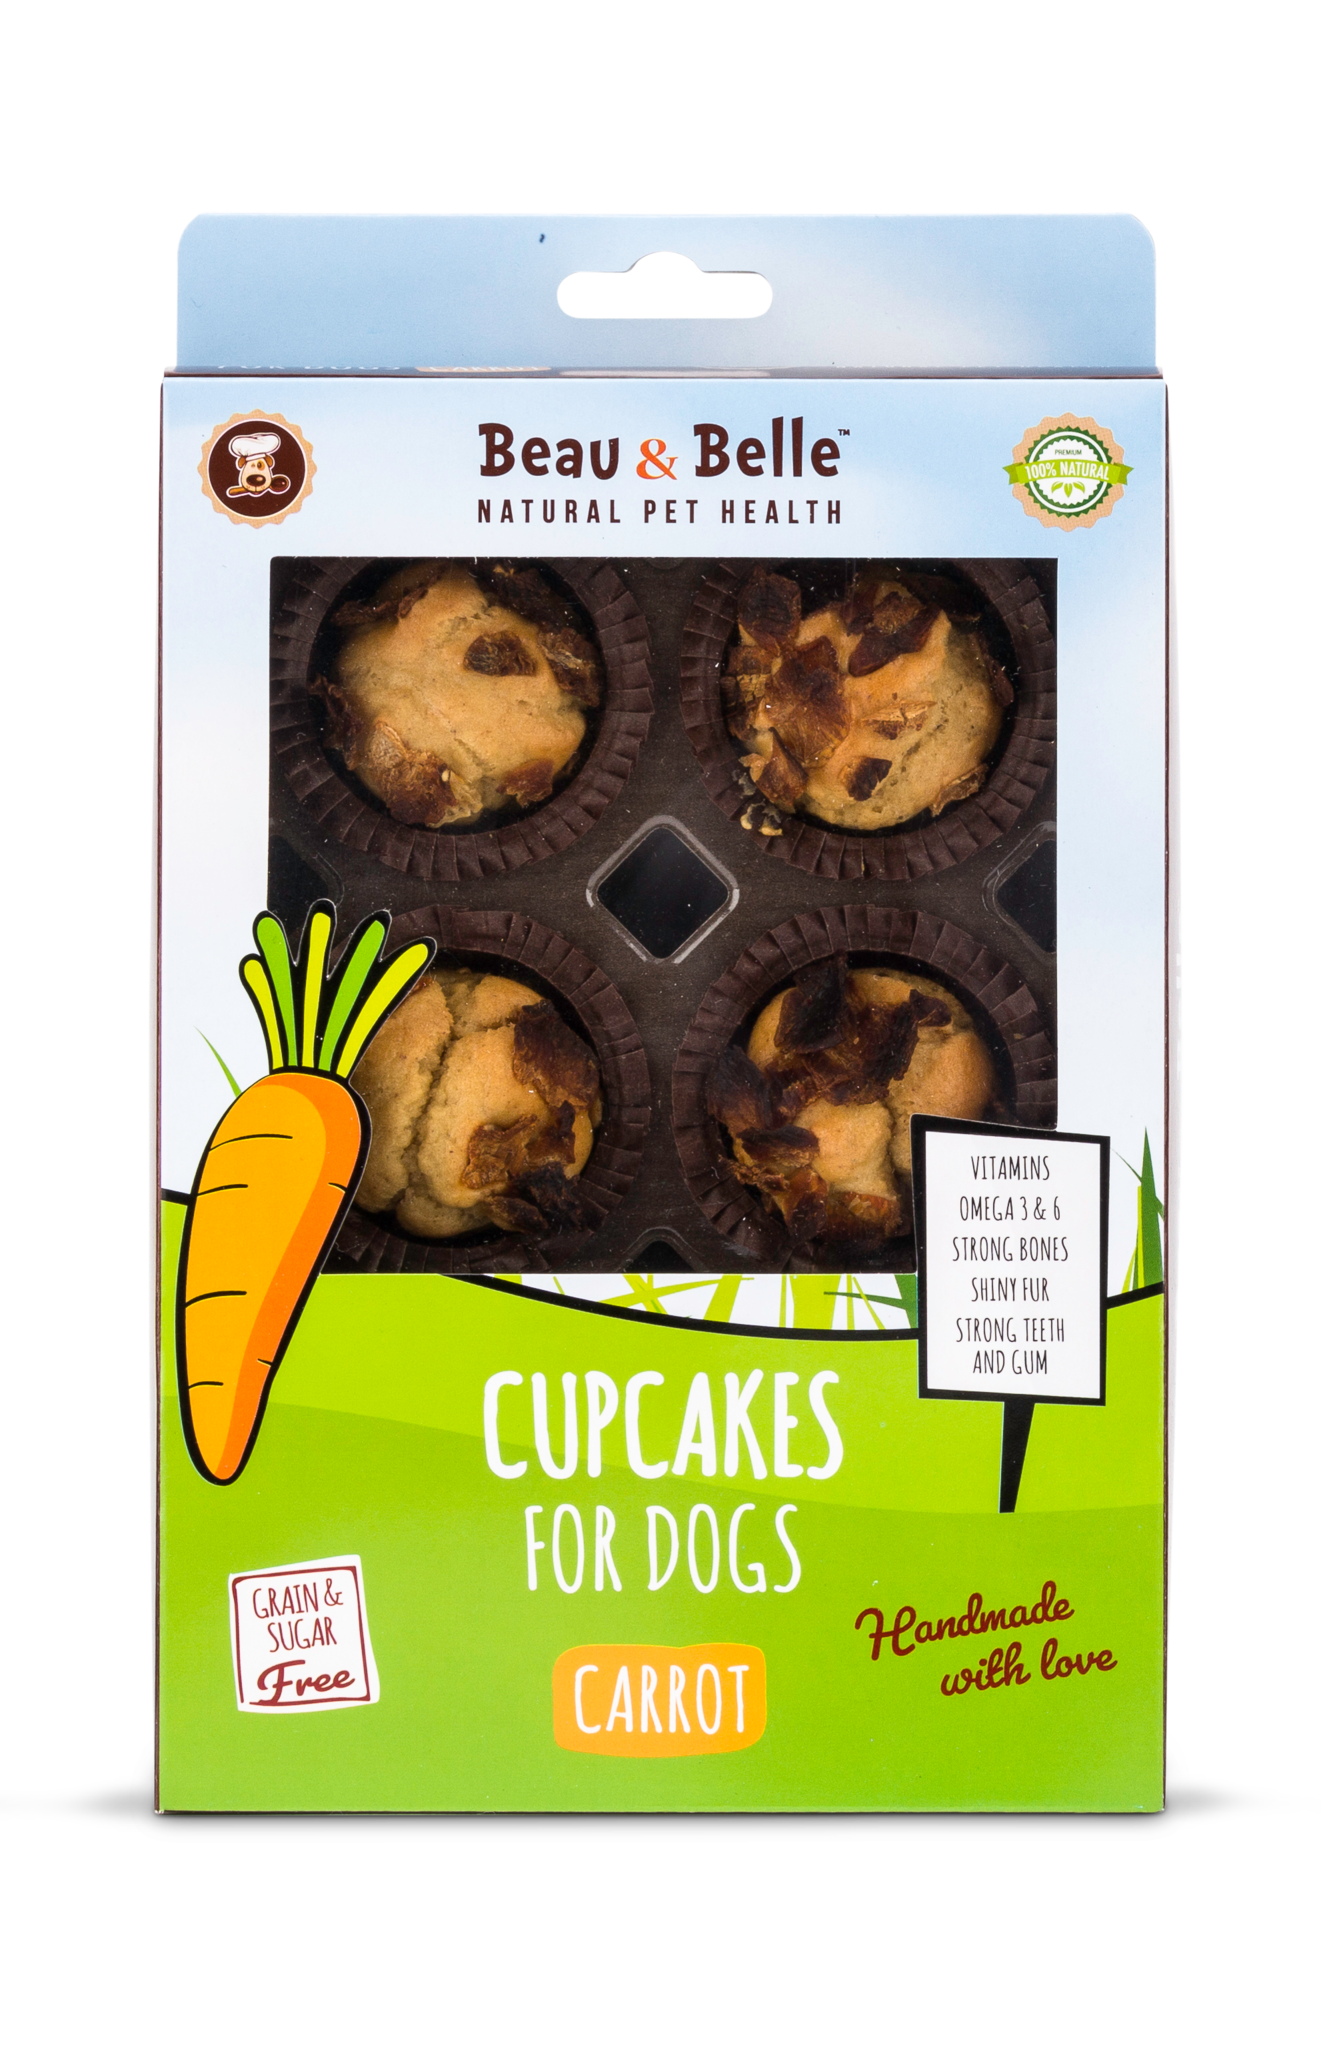 Beau & Belle Cupcakes for dogs met wortel